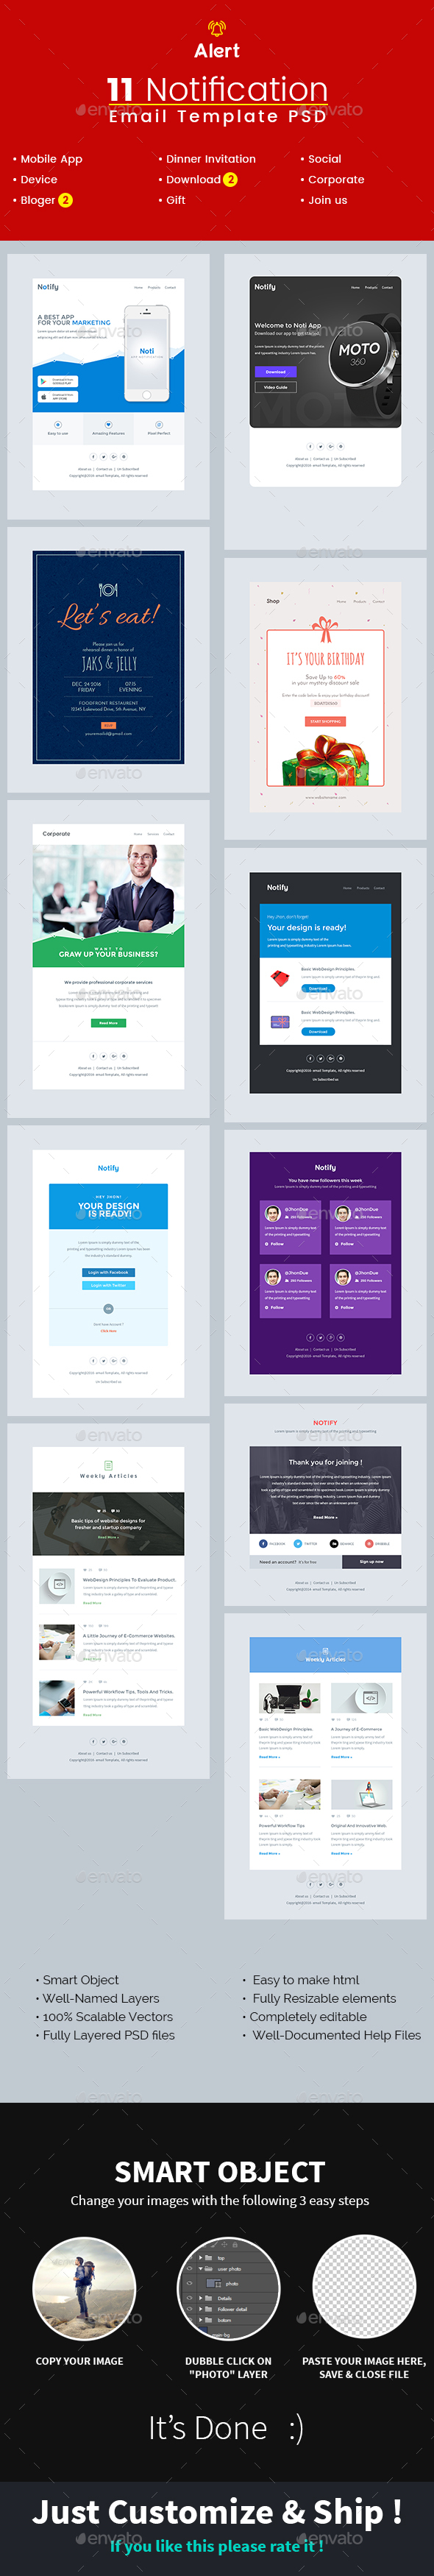 Alert Notification Email Template Psd By Kalanidhithemes Graphicriver